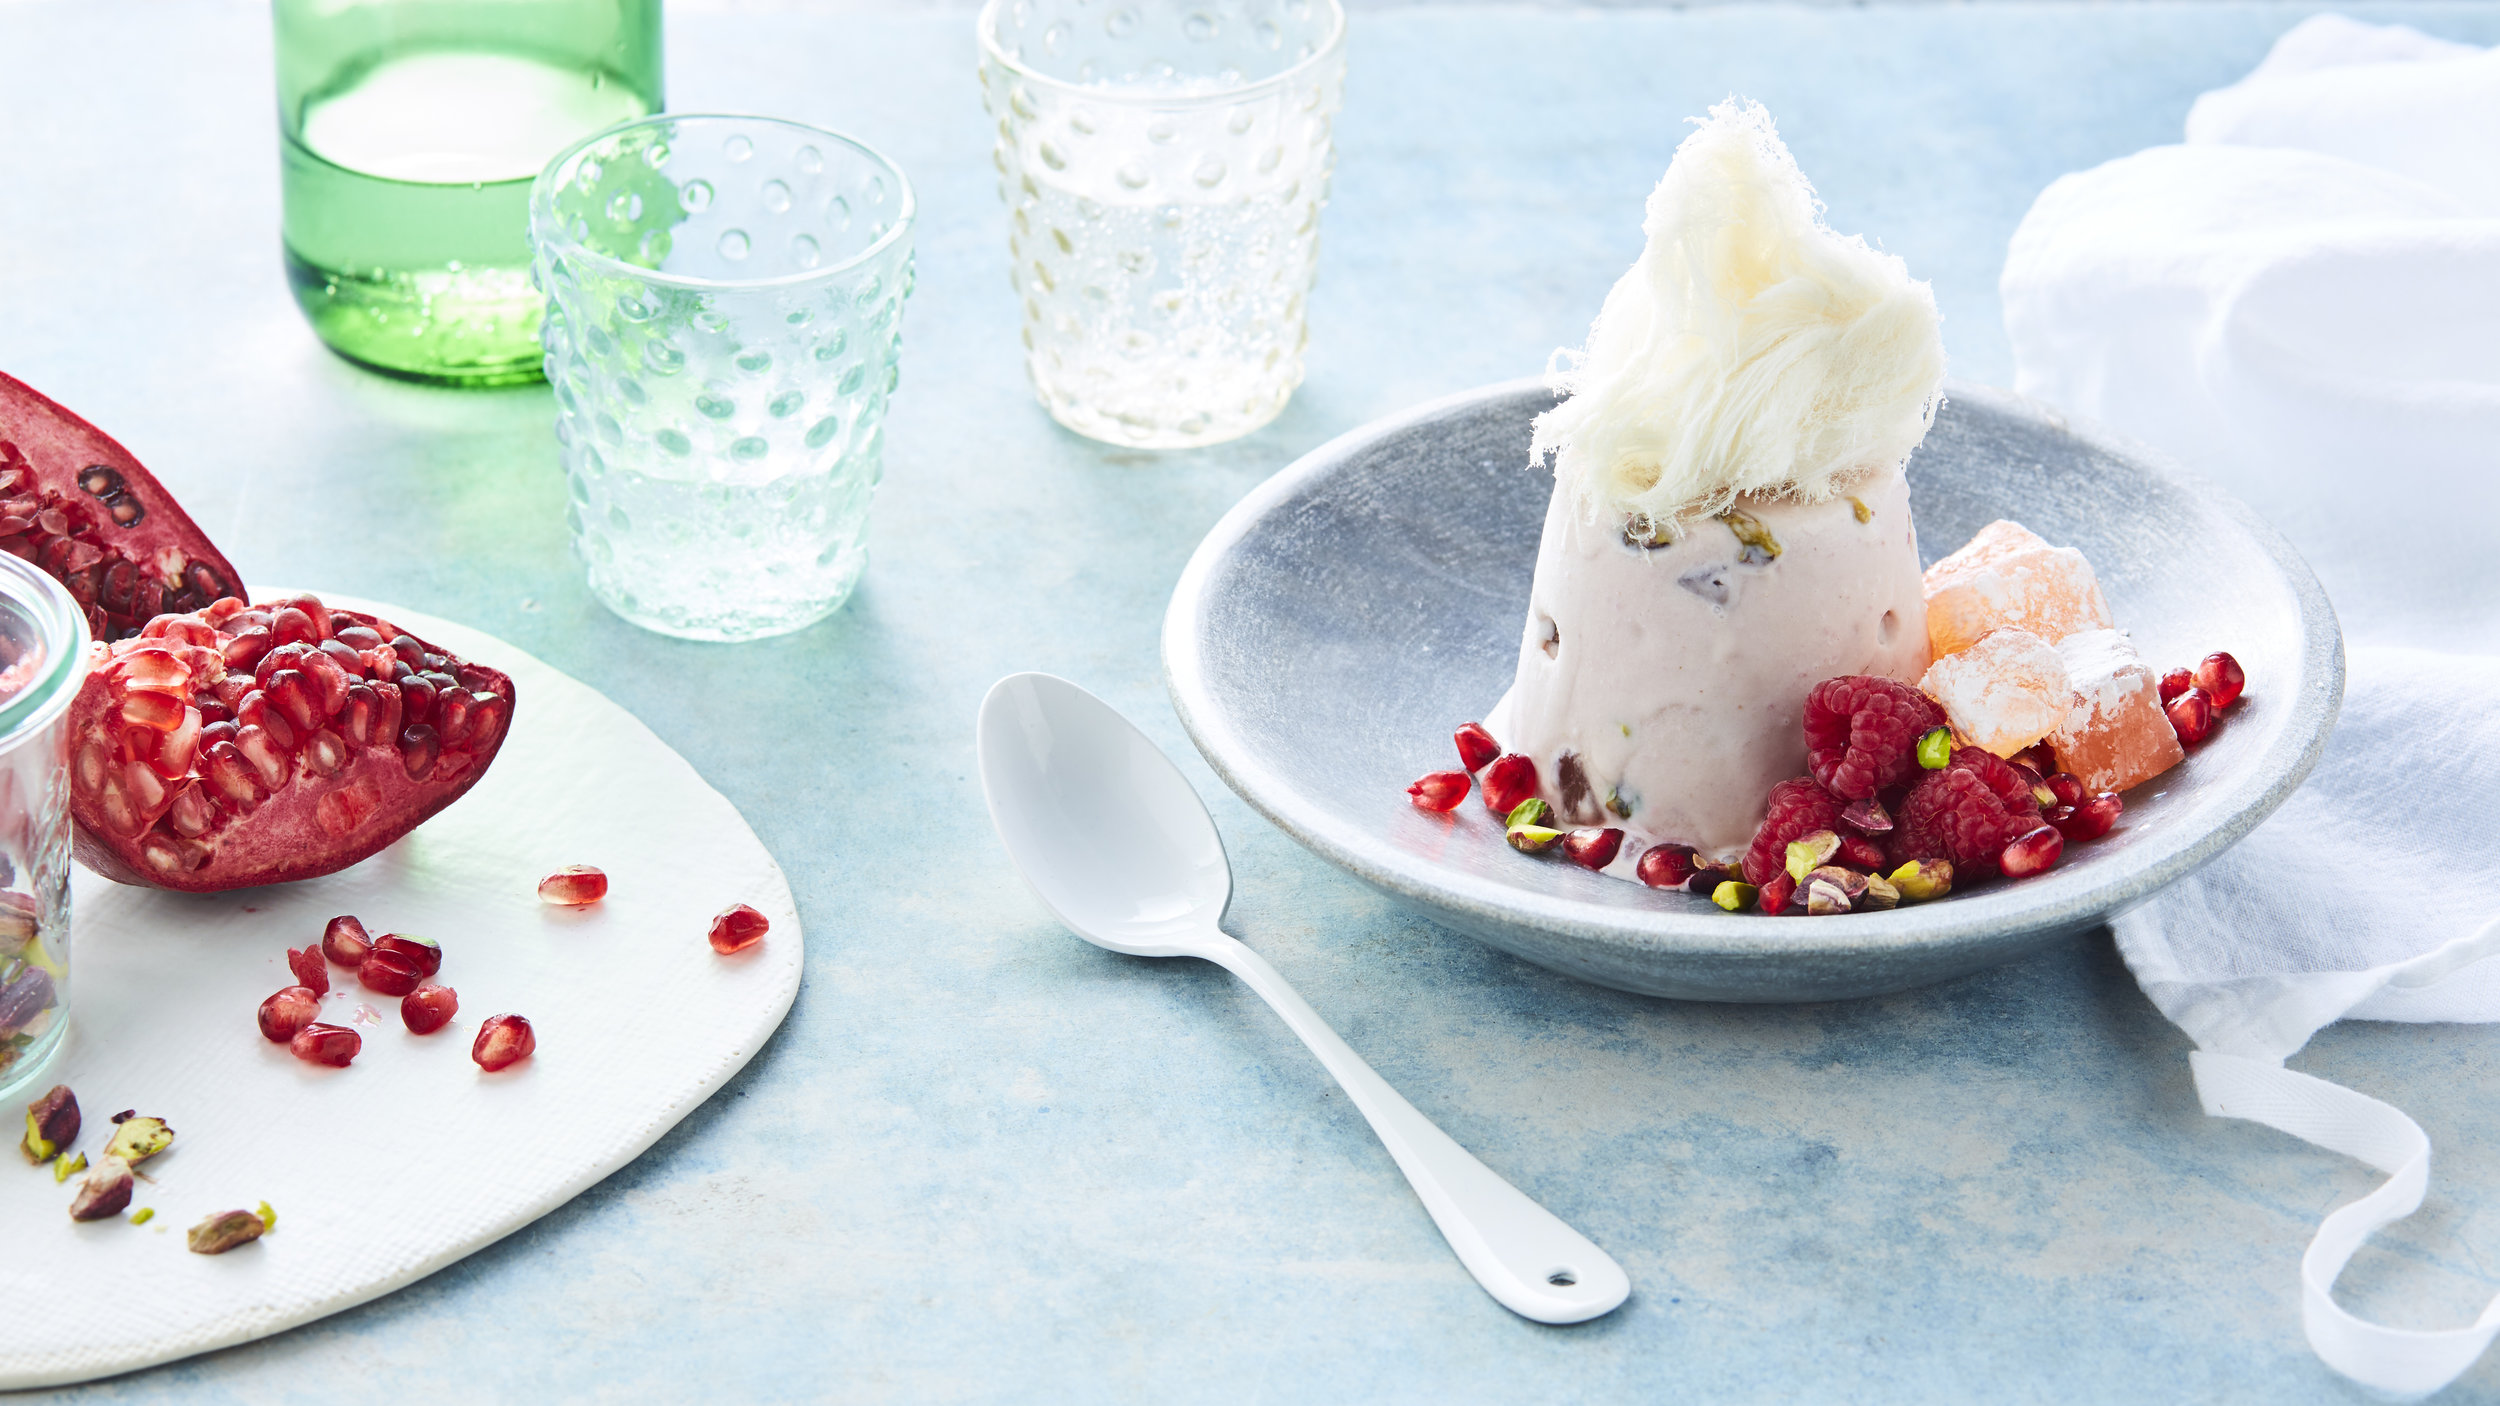 Turkish Delight Icecream Timbals, Photography: Brett Stevens, Art Direction: Anne Marie Cummins, Food and Props Styling: Marcus Hay